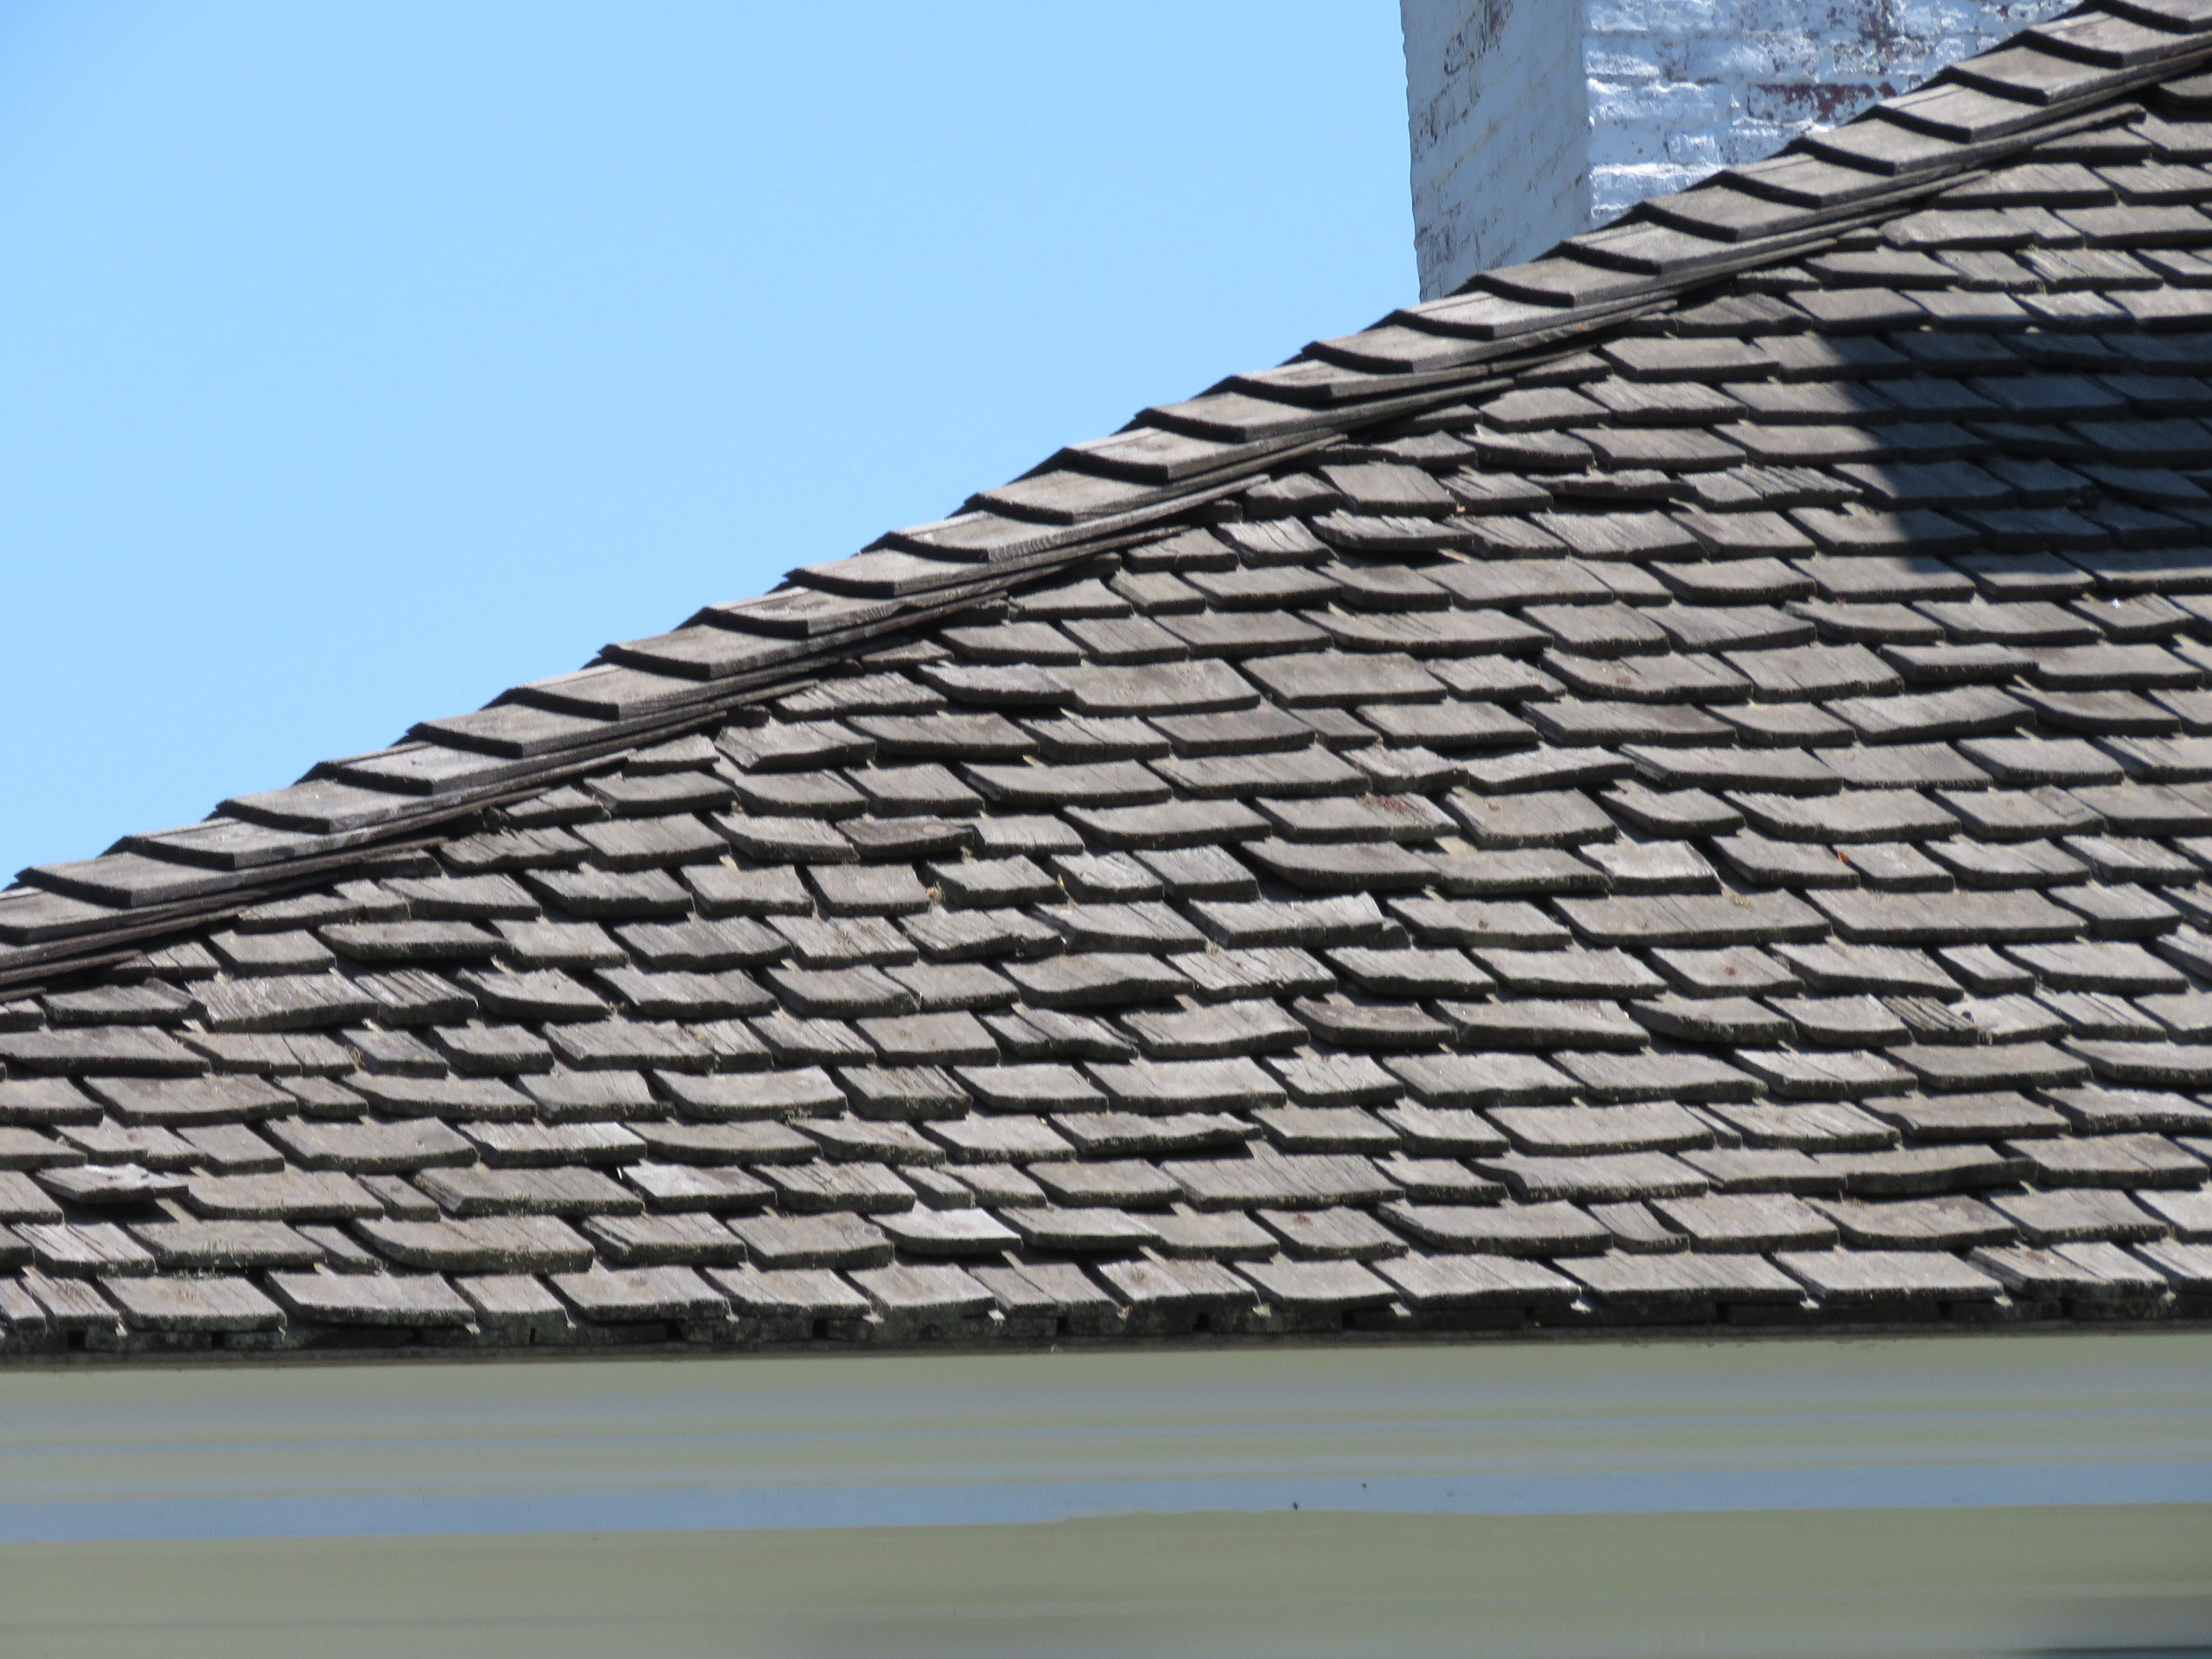 An aged wood shake roof.